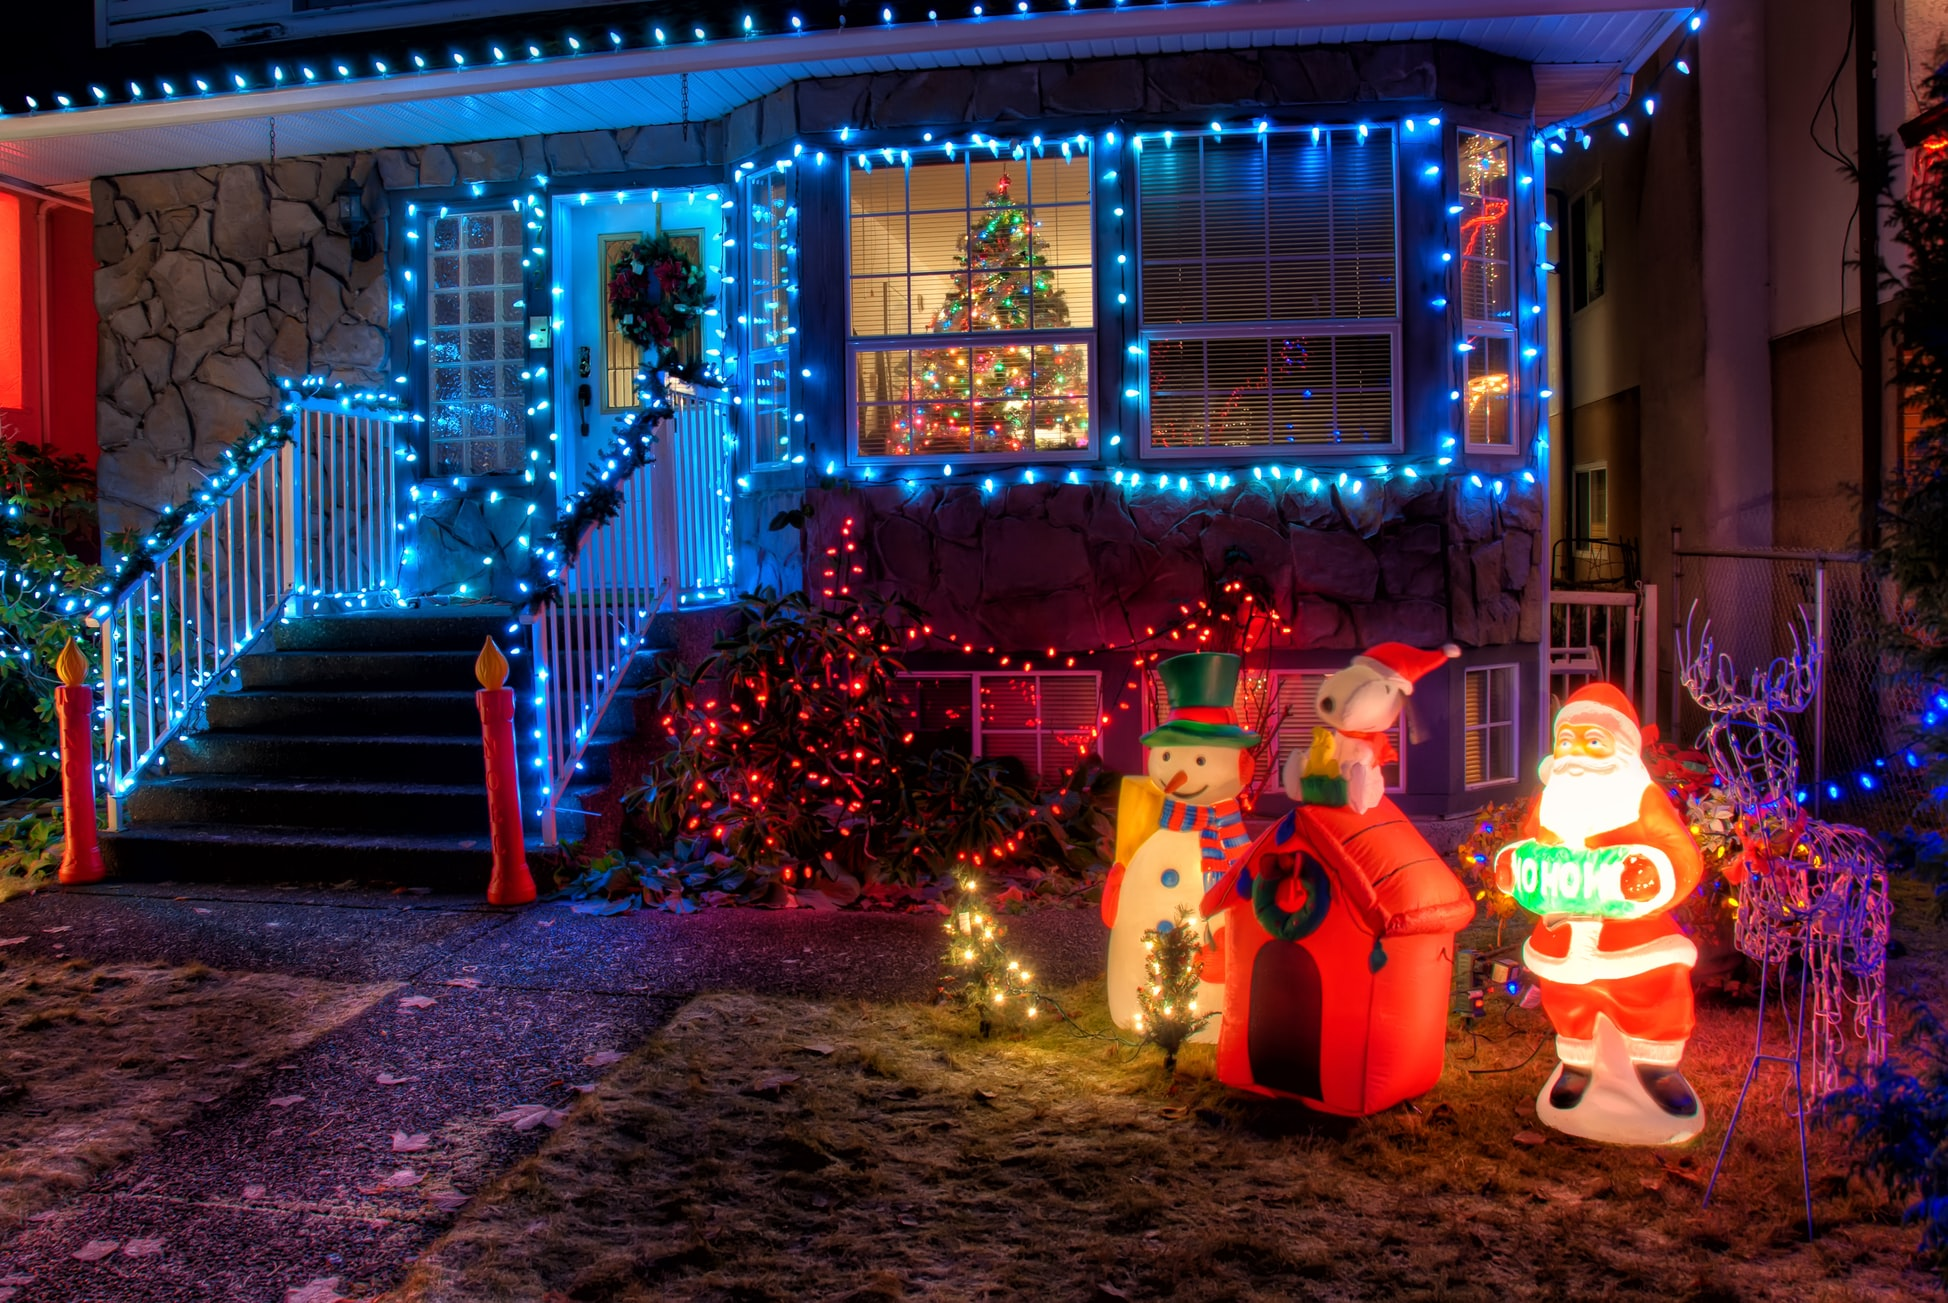 A yard displays Santa, Snoopy, and snowmen decorations in front of a house with light-lined windows and a Christmas tree.